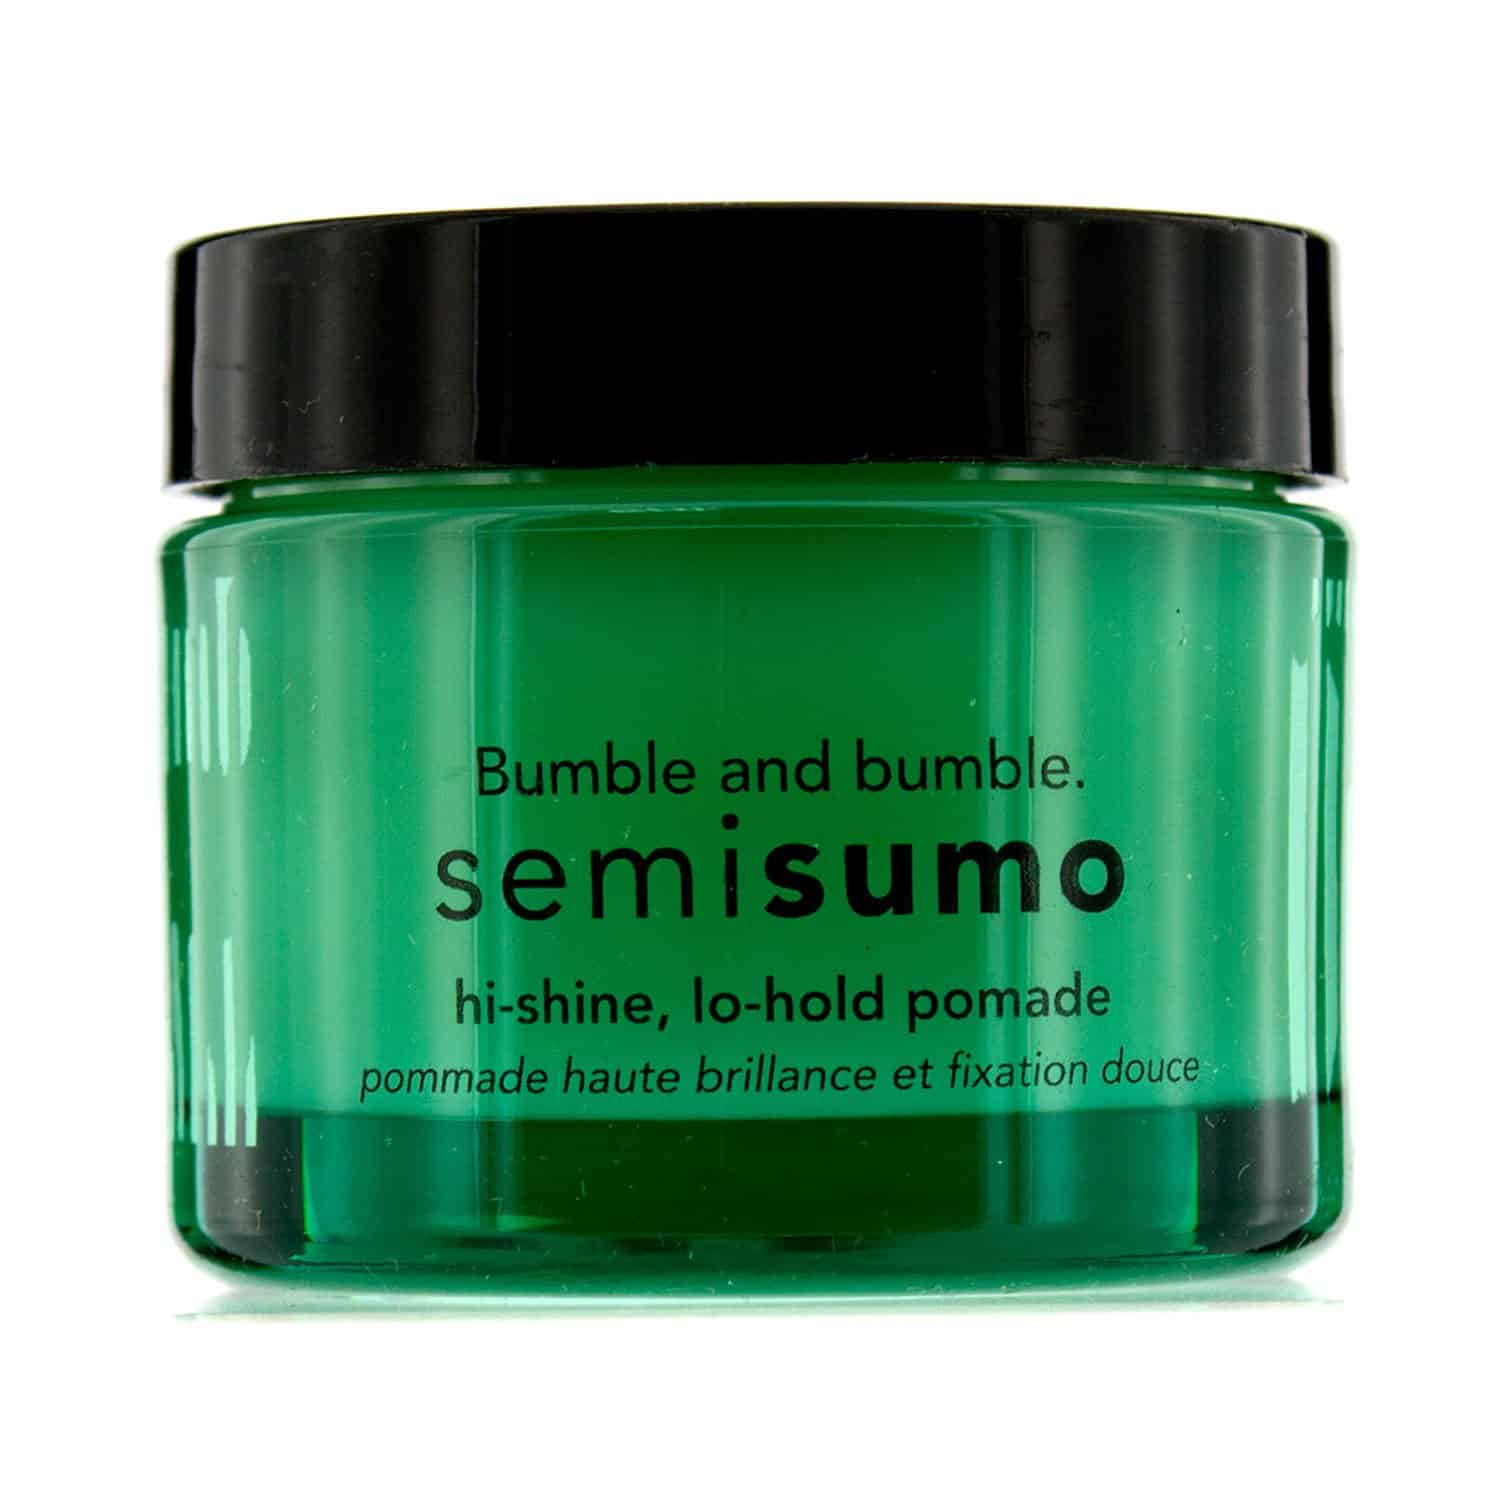 Bumble and Bumble Semisumo Pomade